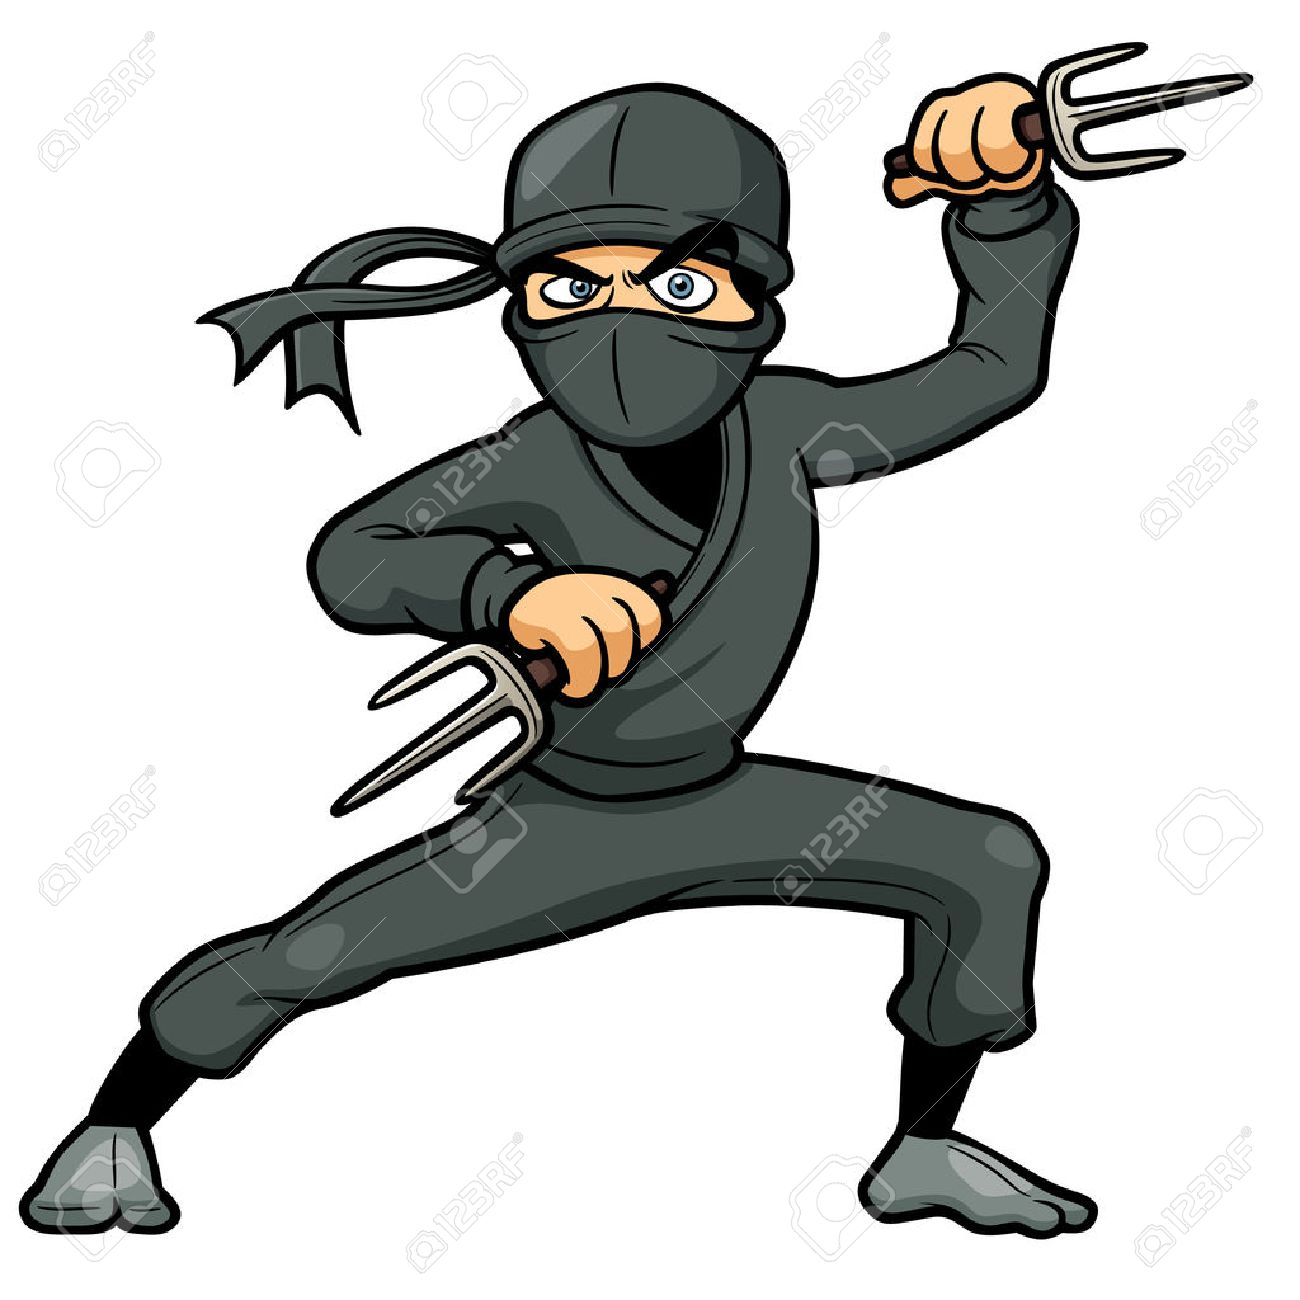 vector illustration of cartoon ninja royalty free cliparts vectors rh 123rf com female ninja cartoon pictures ninja cartoon picture download